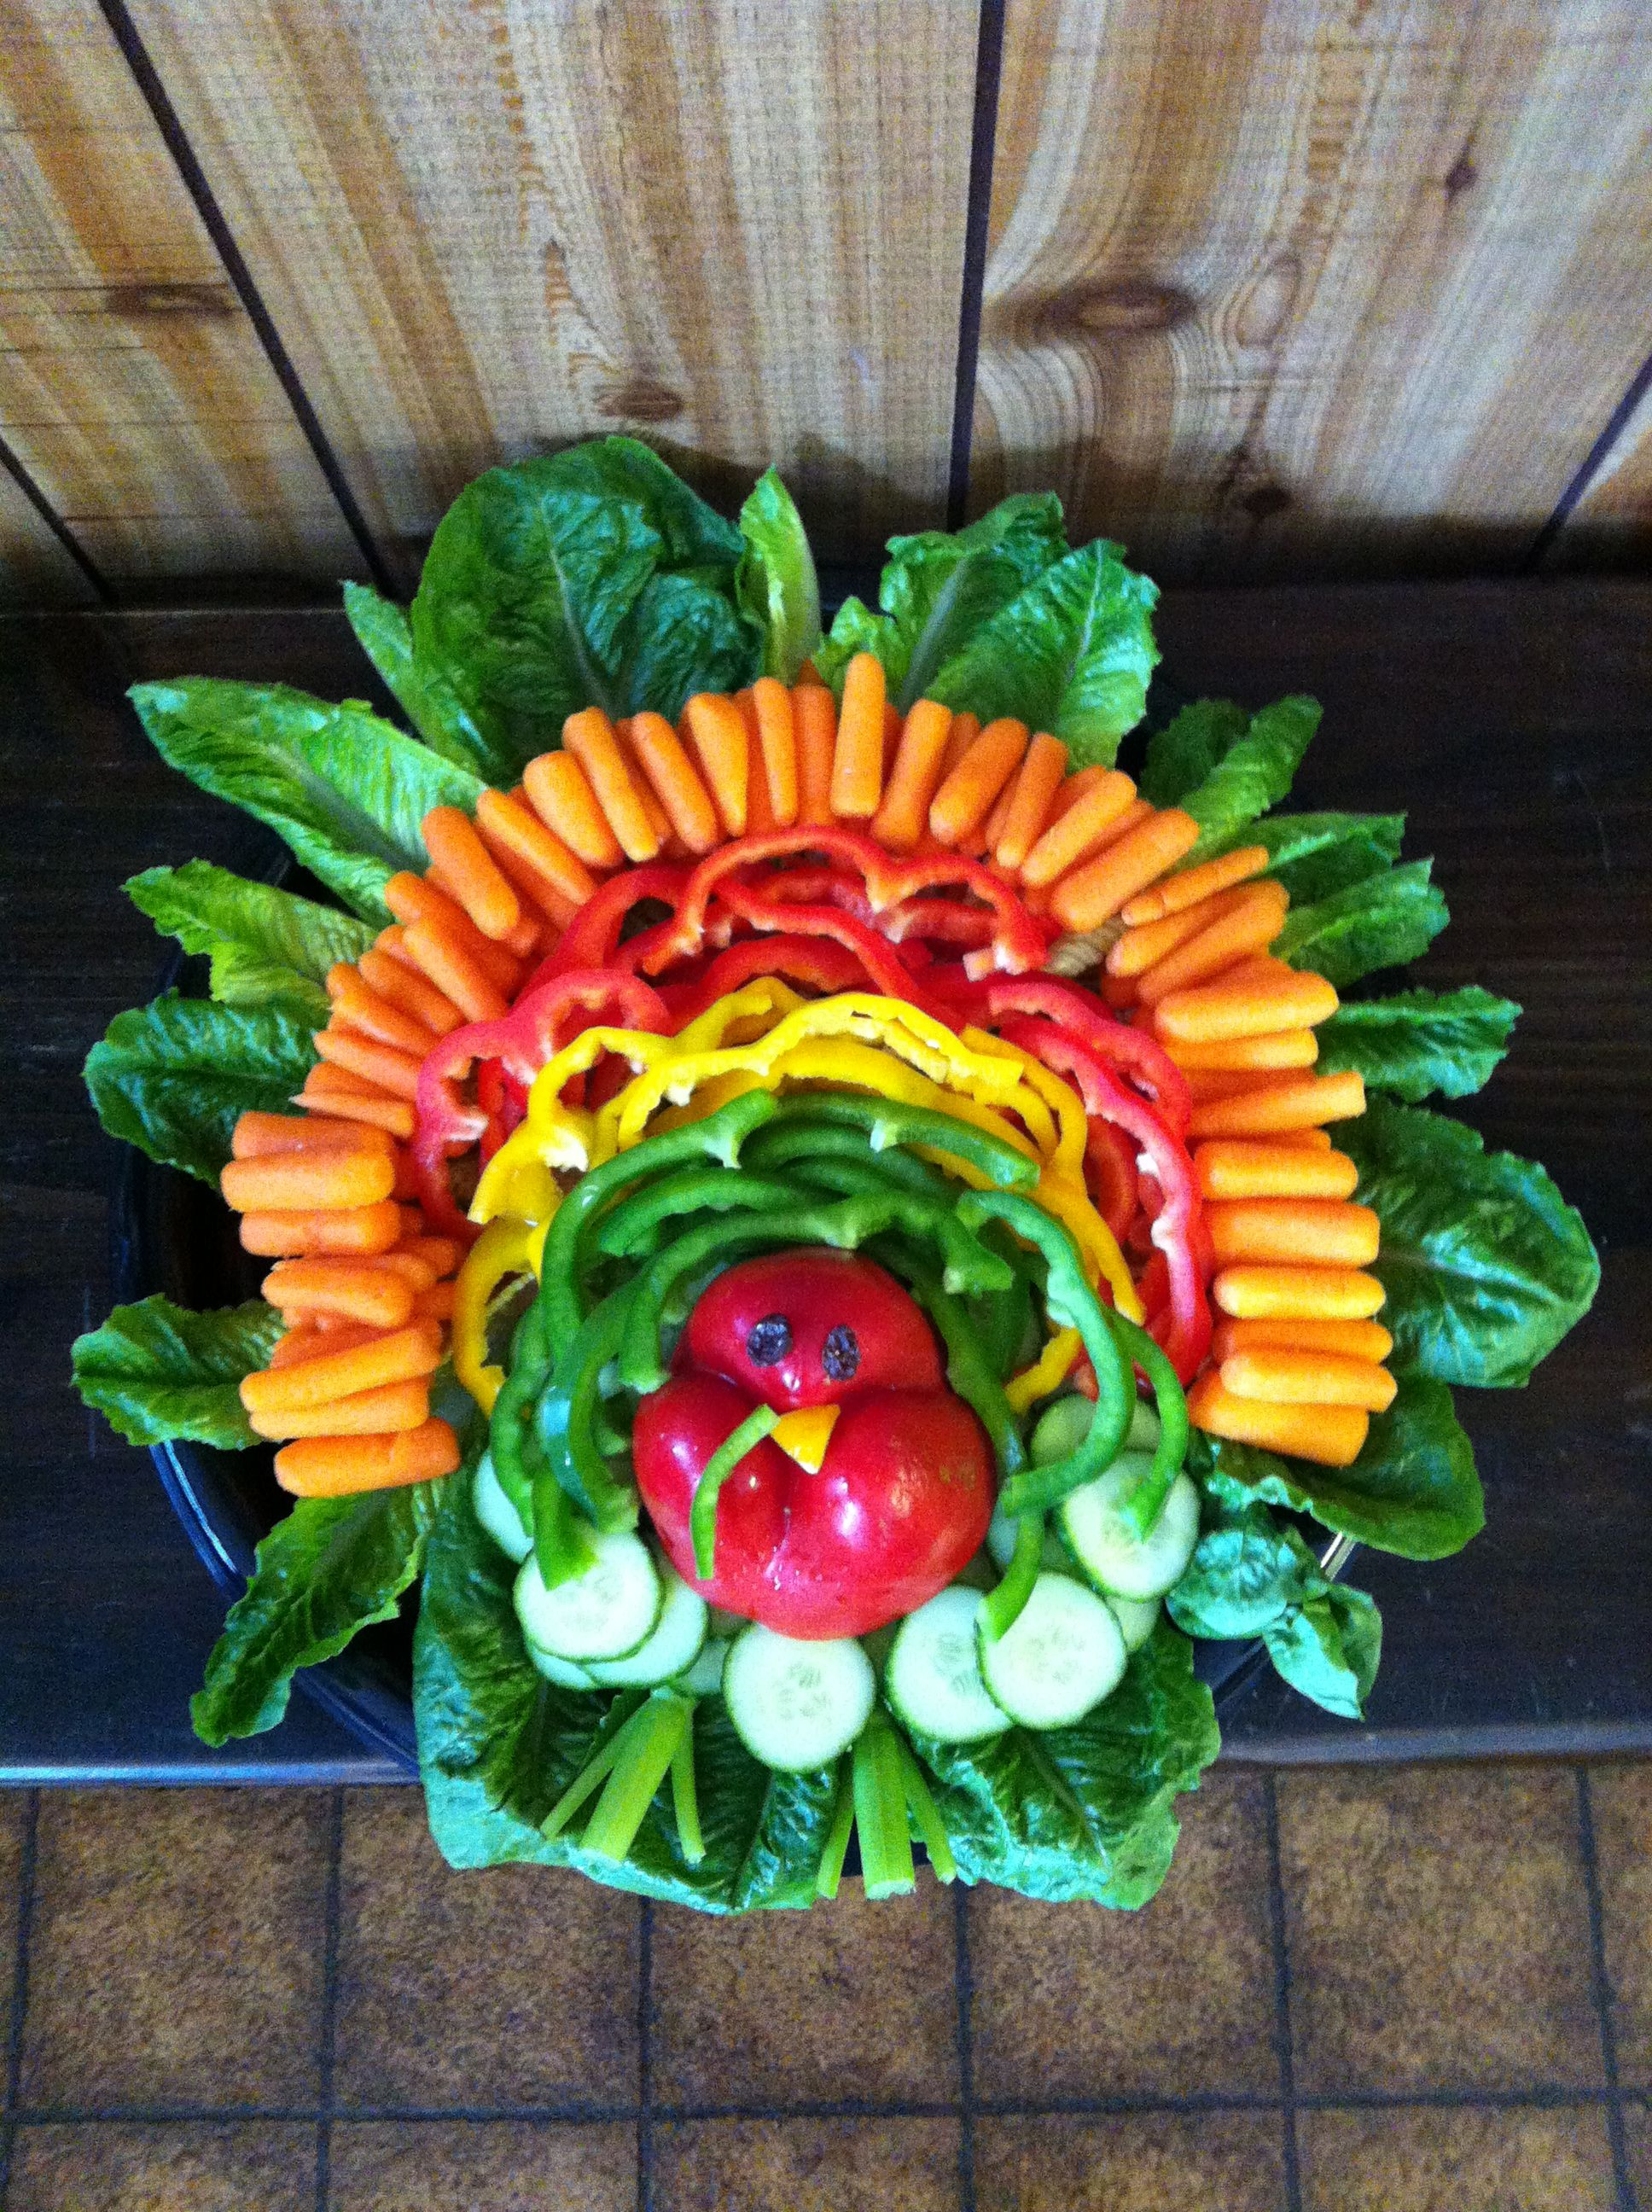 Decorative Relish Tray For Thanksgiving Classy Vegetarian Turkey For Thanksgivingveggie Turkeydiy Vegetable Design Inspiration